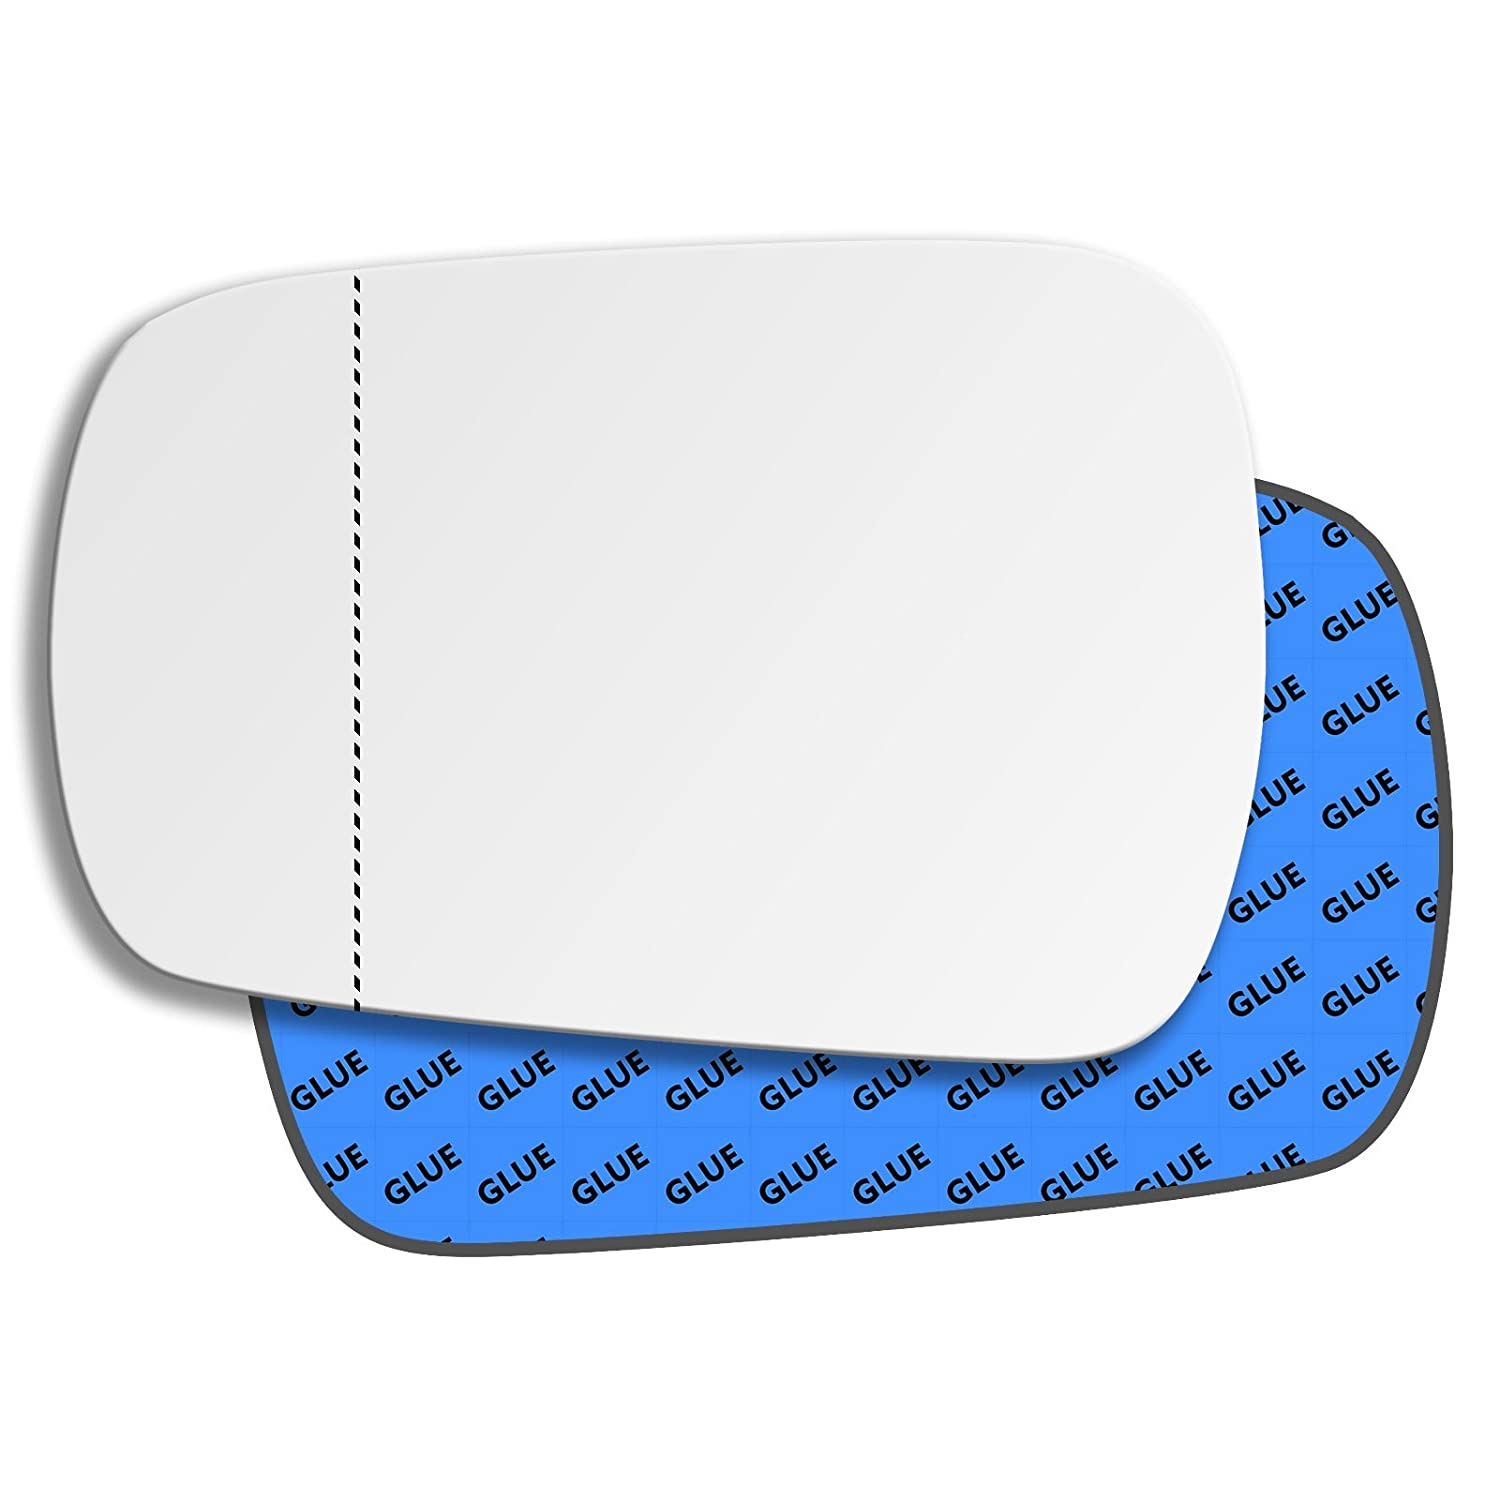 Left Passenger Near Side Convex Wing Door Mirror Glass for FORD FUSION 2002-2005